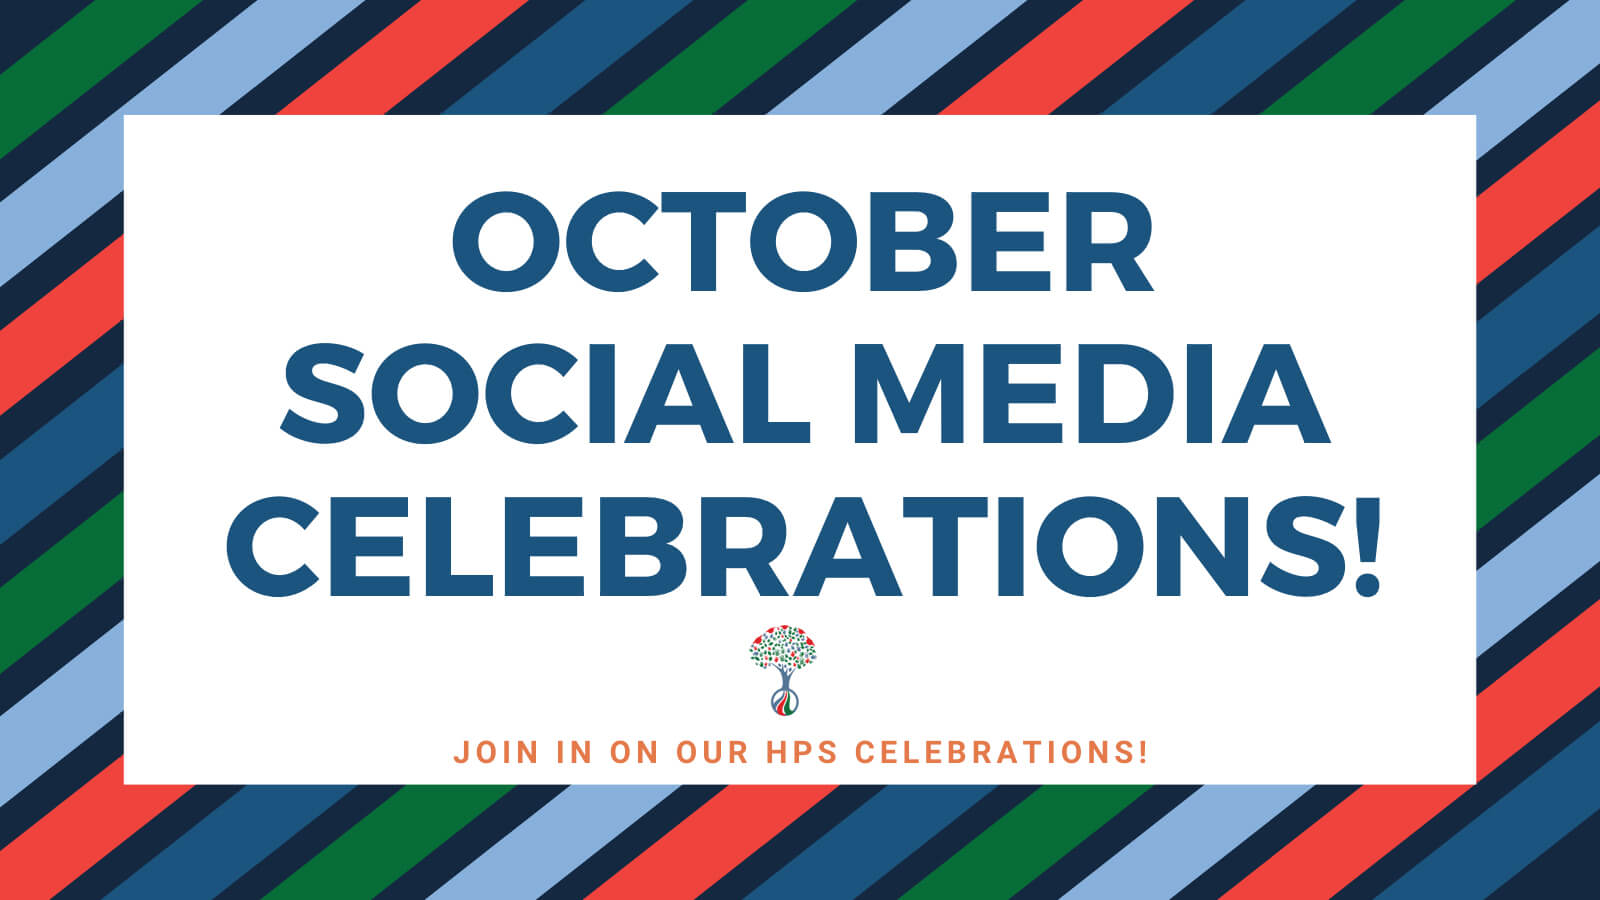 Join us in our October Social Media Celebrations!